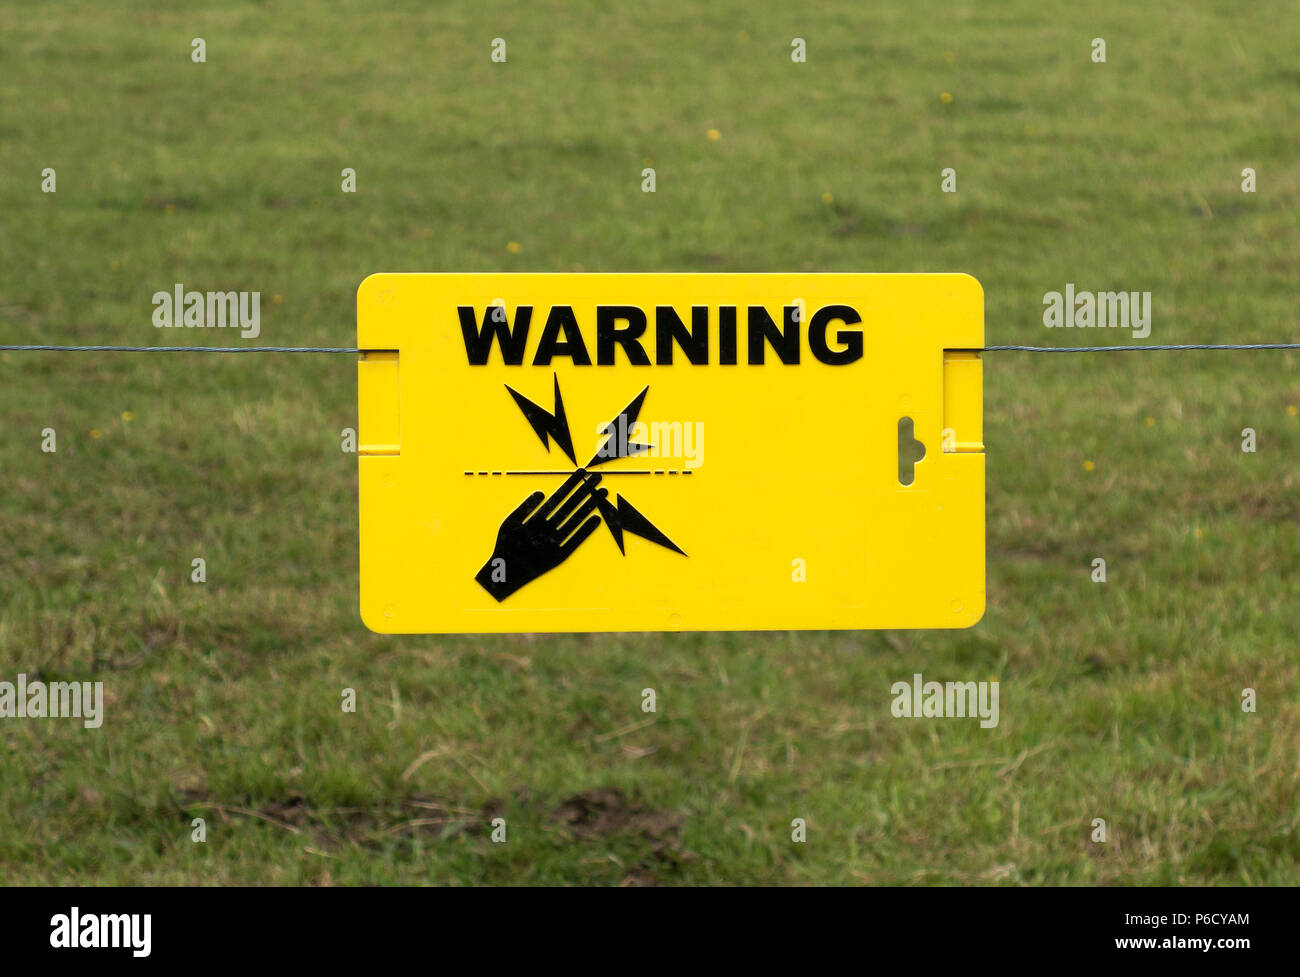 electric fence warning sign - Stock Image